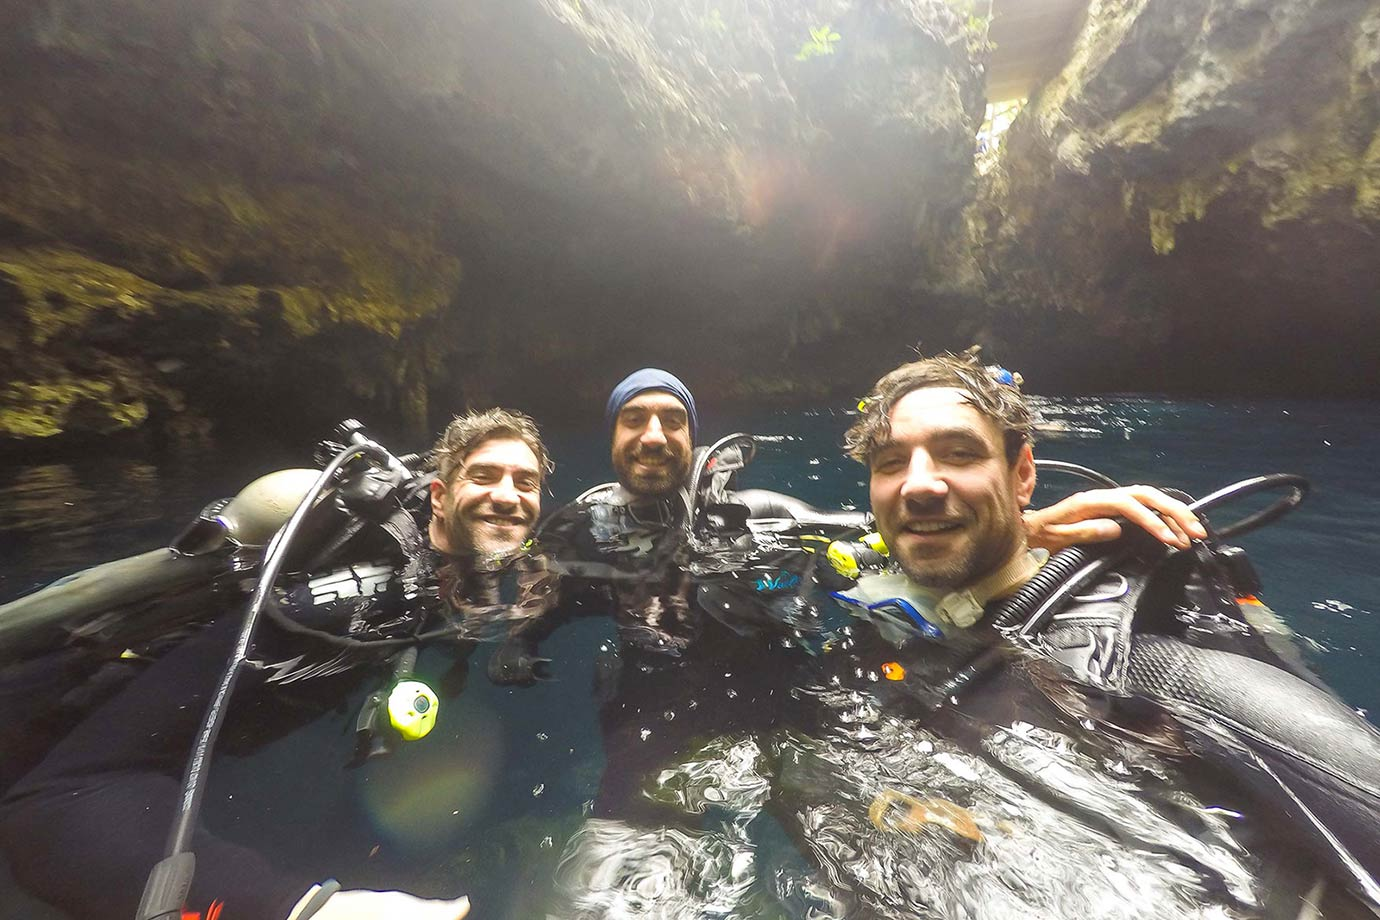 Diving the cenotes in Mexico